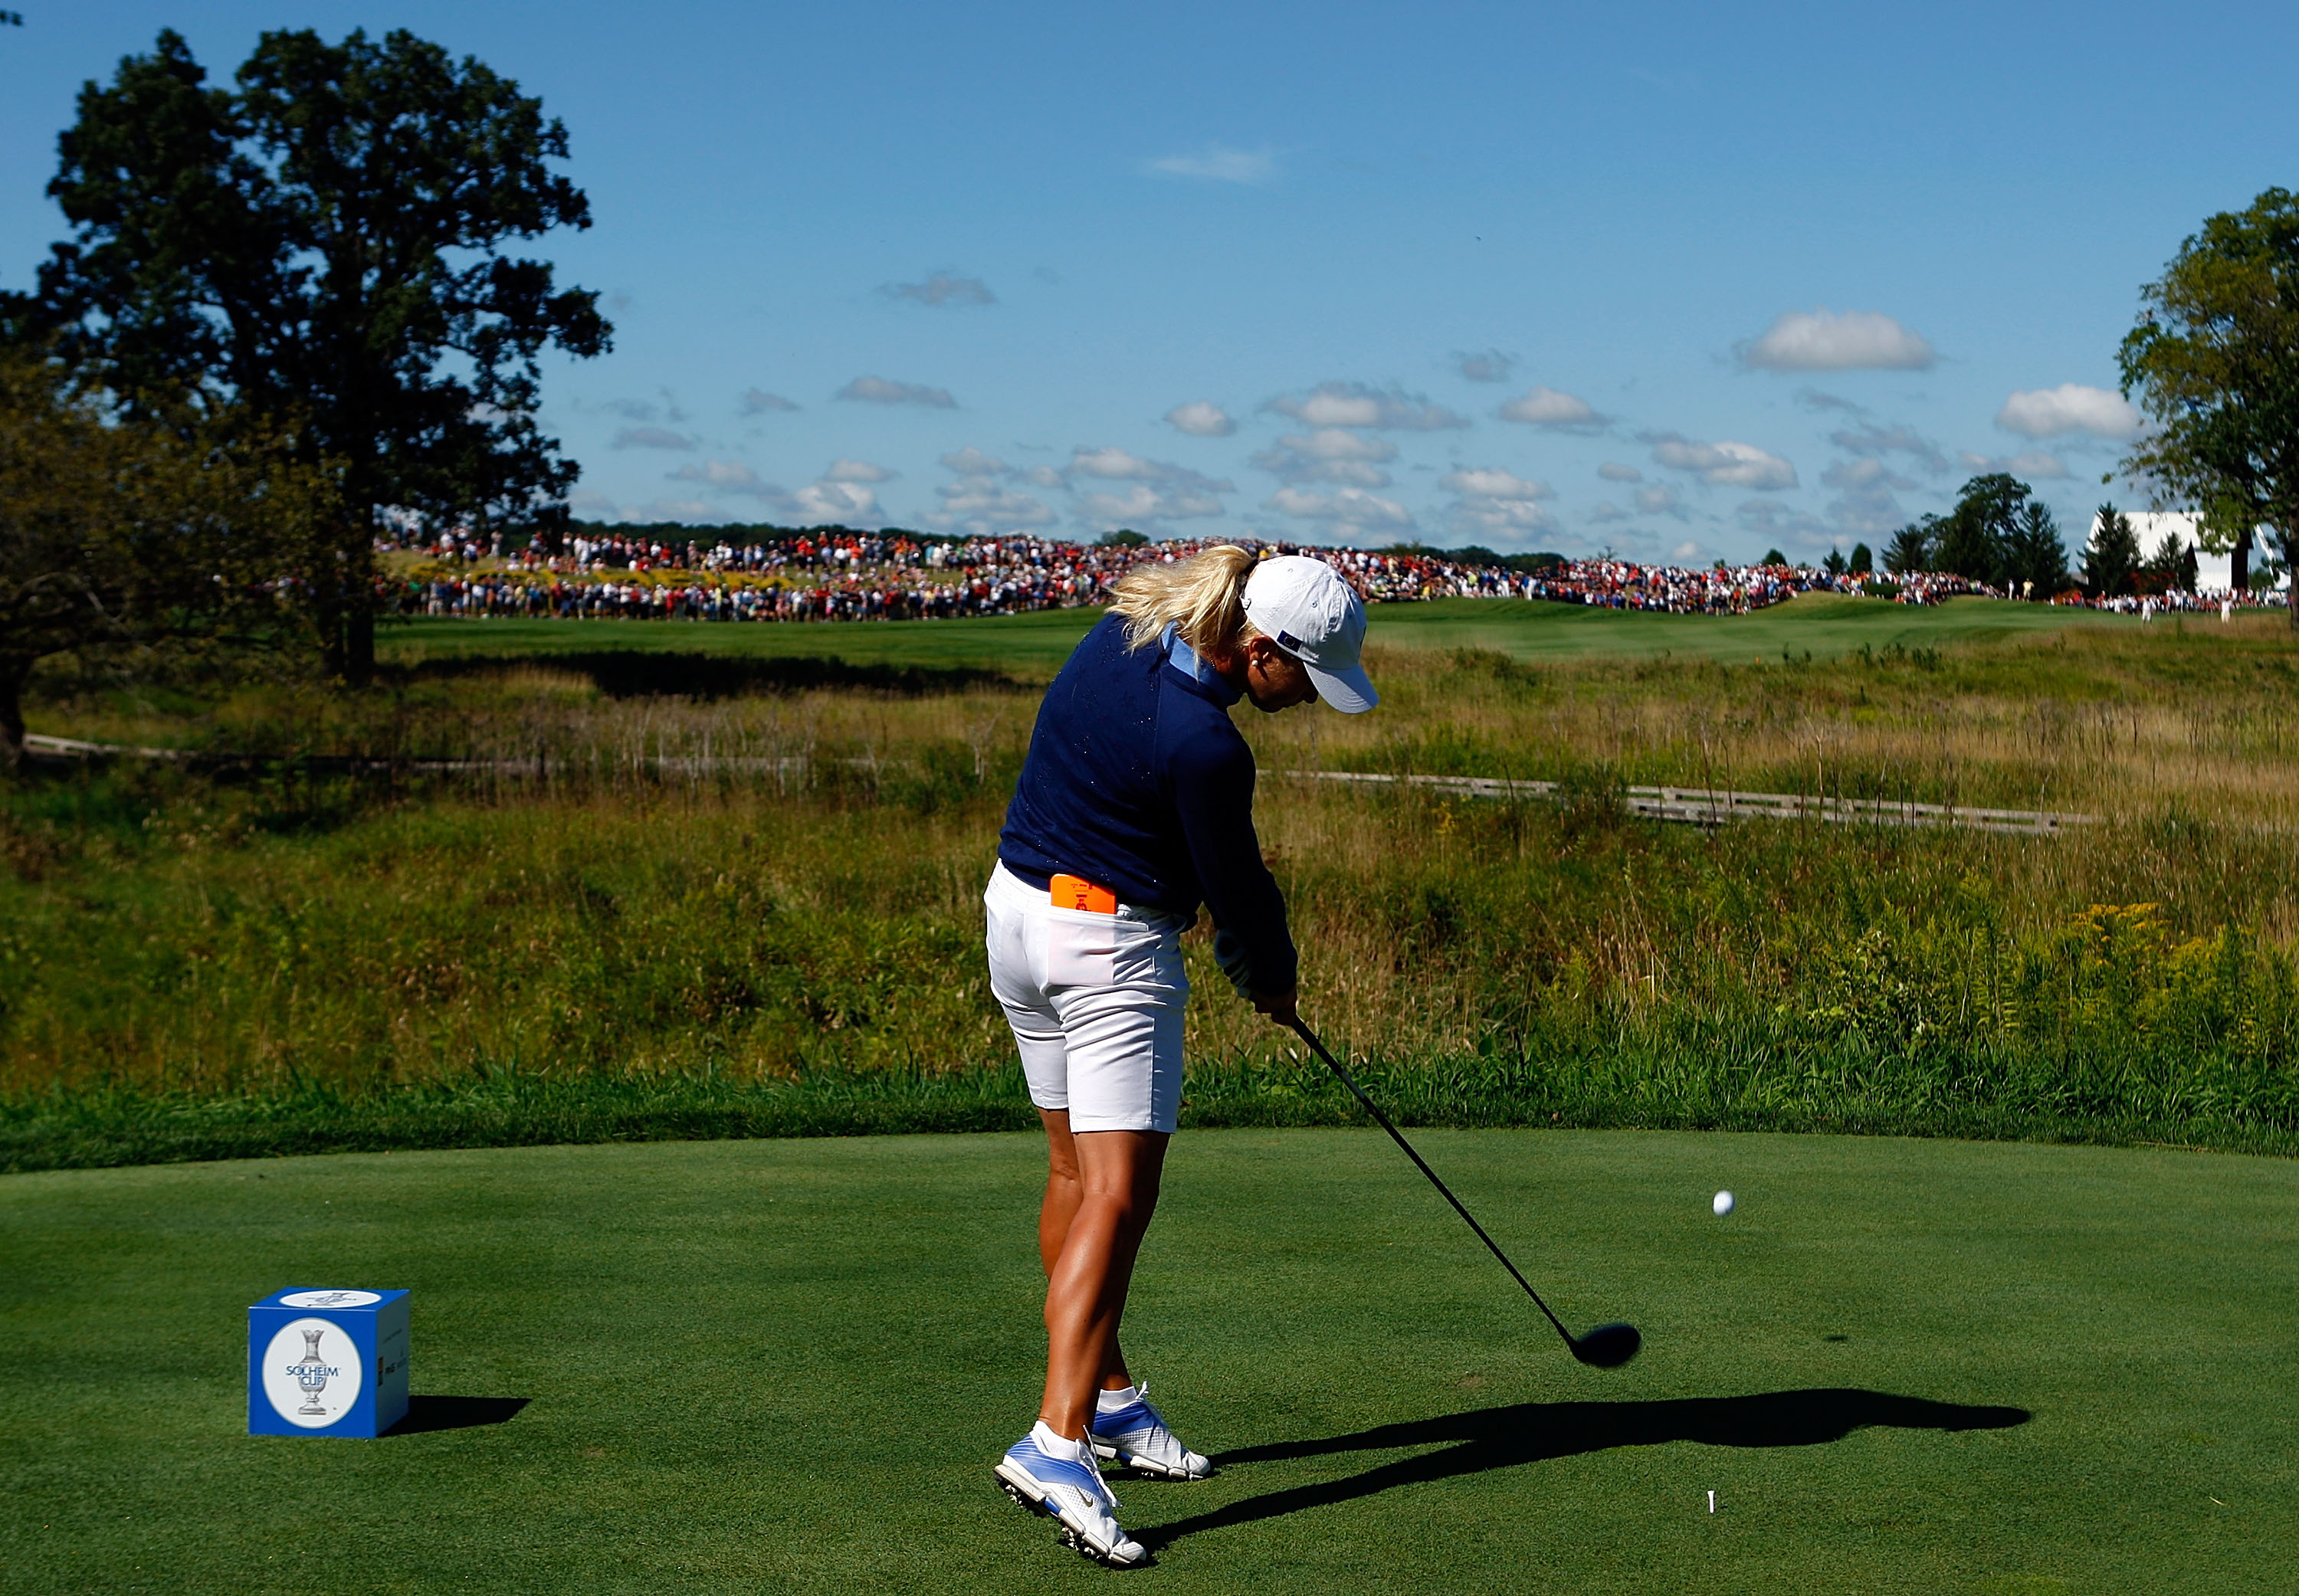 Suzann Pettersen wears her blue outfit well at the Solheim Cup.